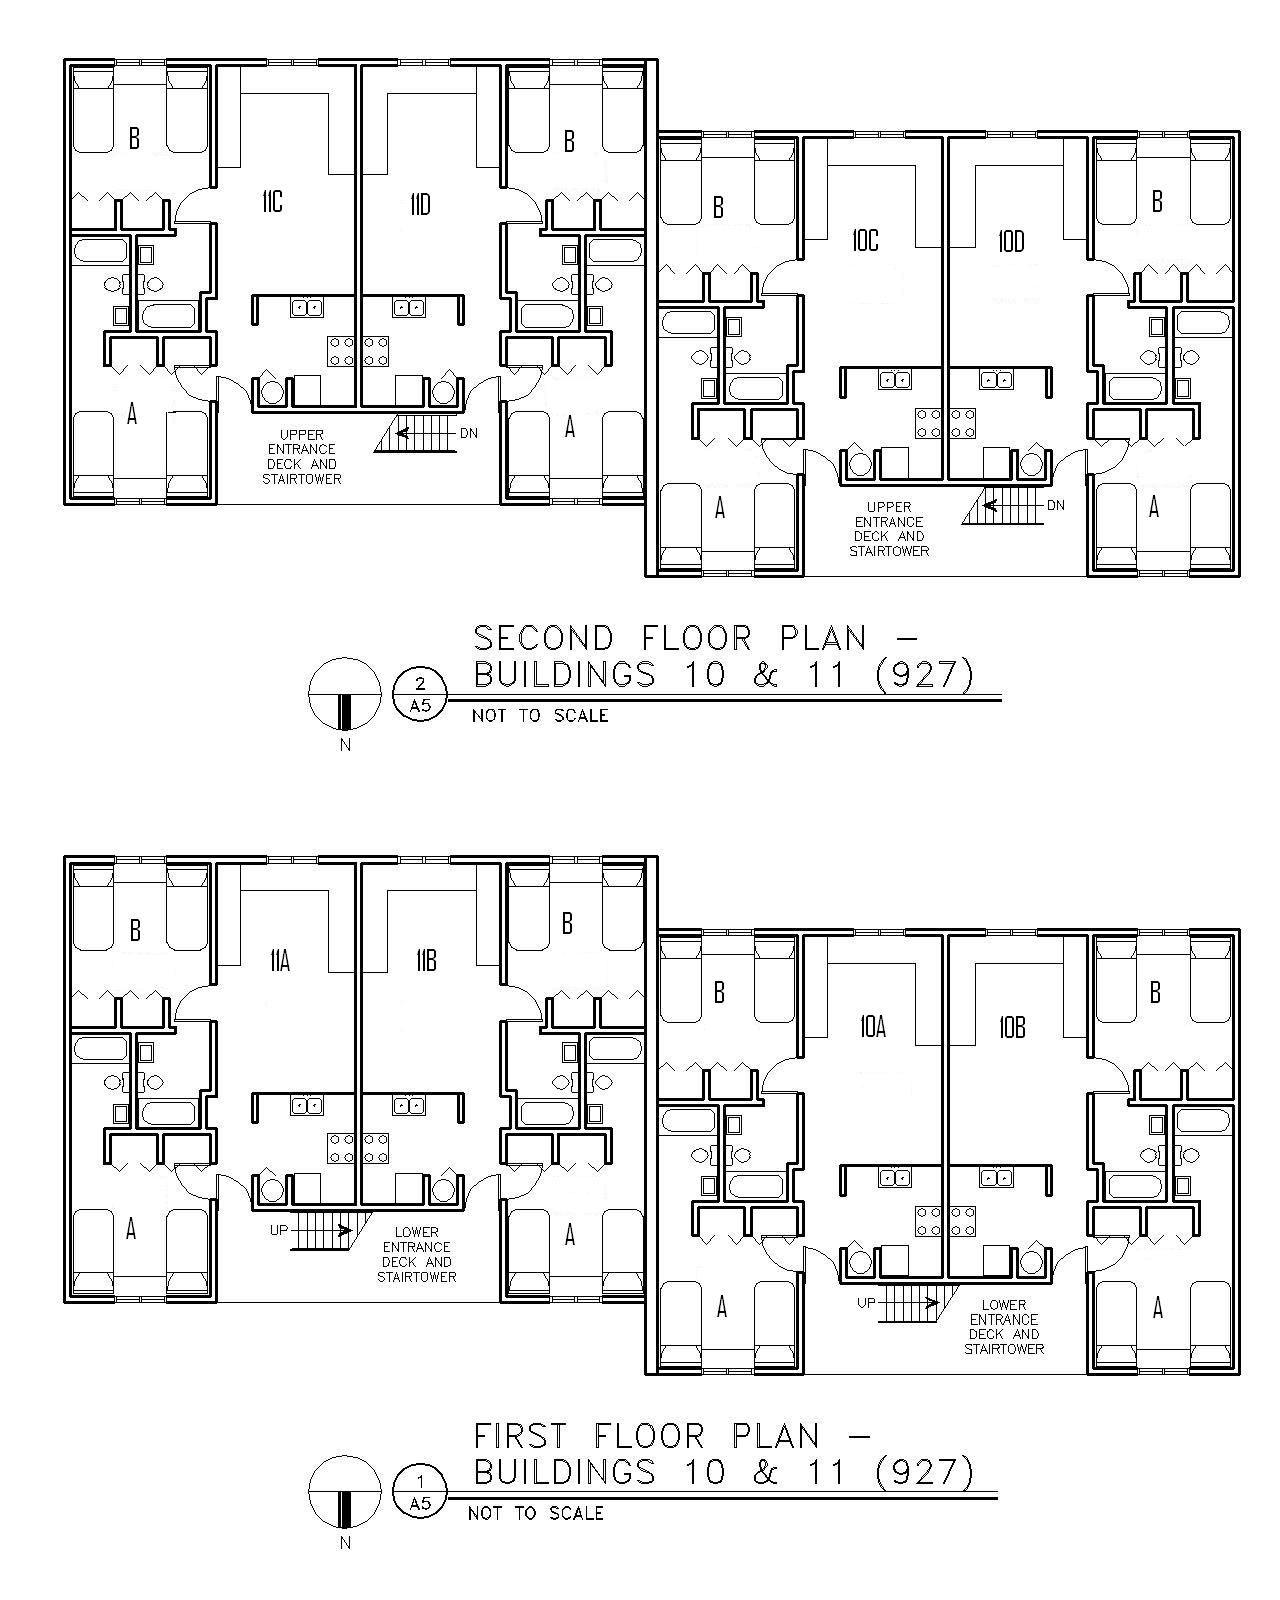 Floor Plan for Buildings 10 & 11